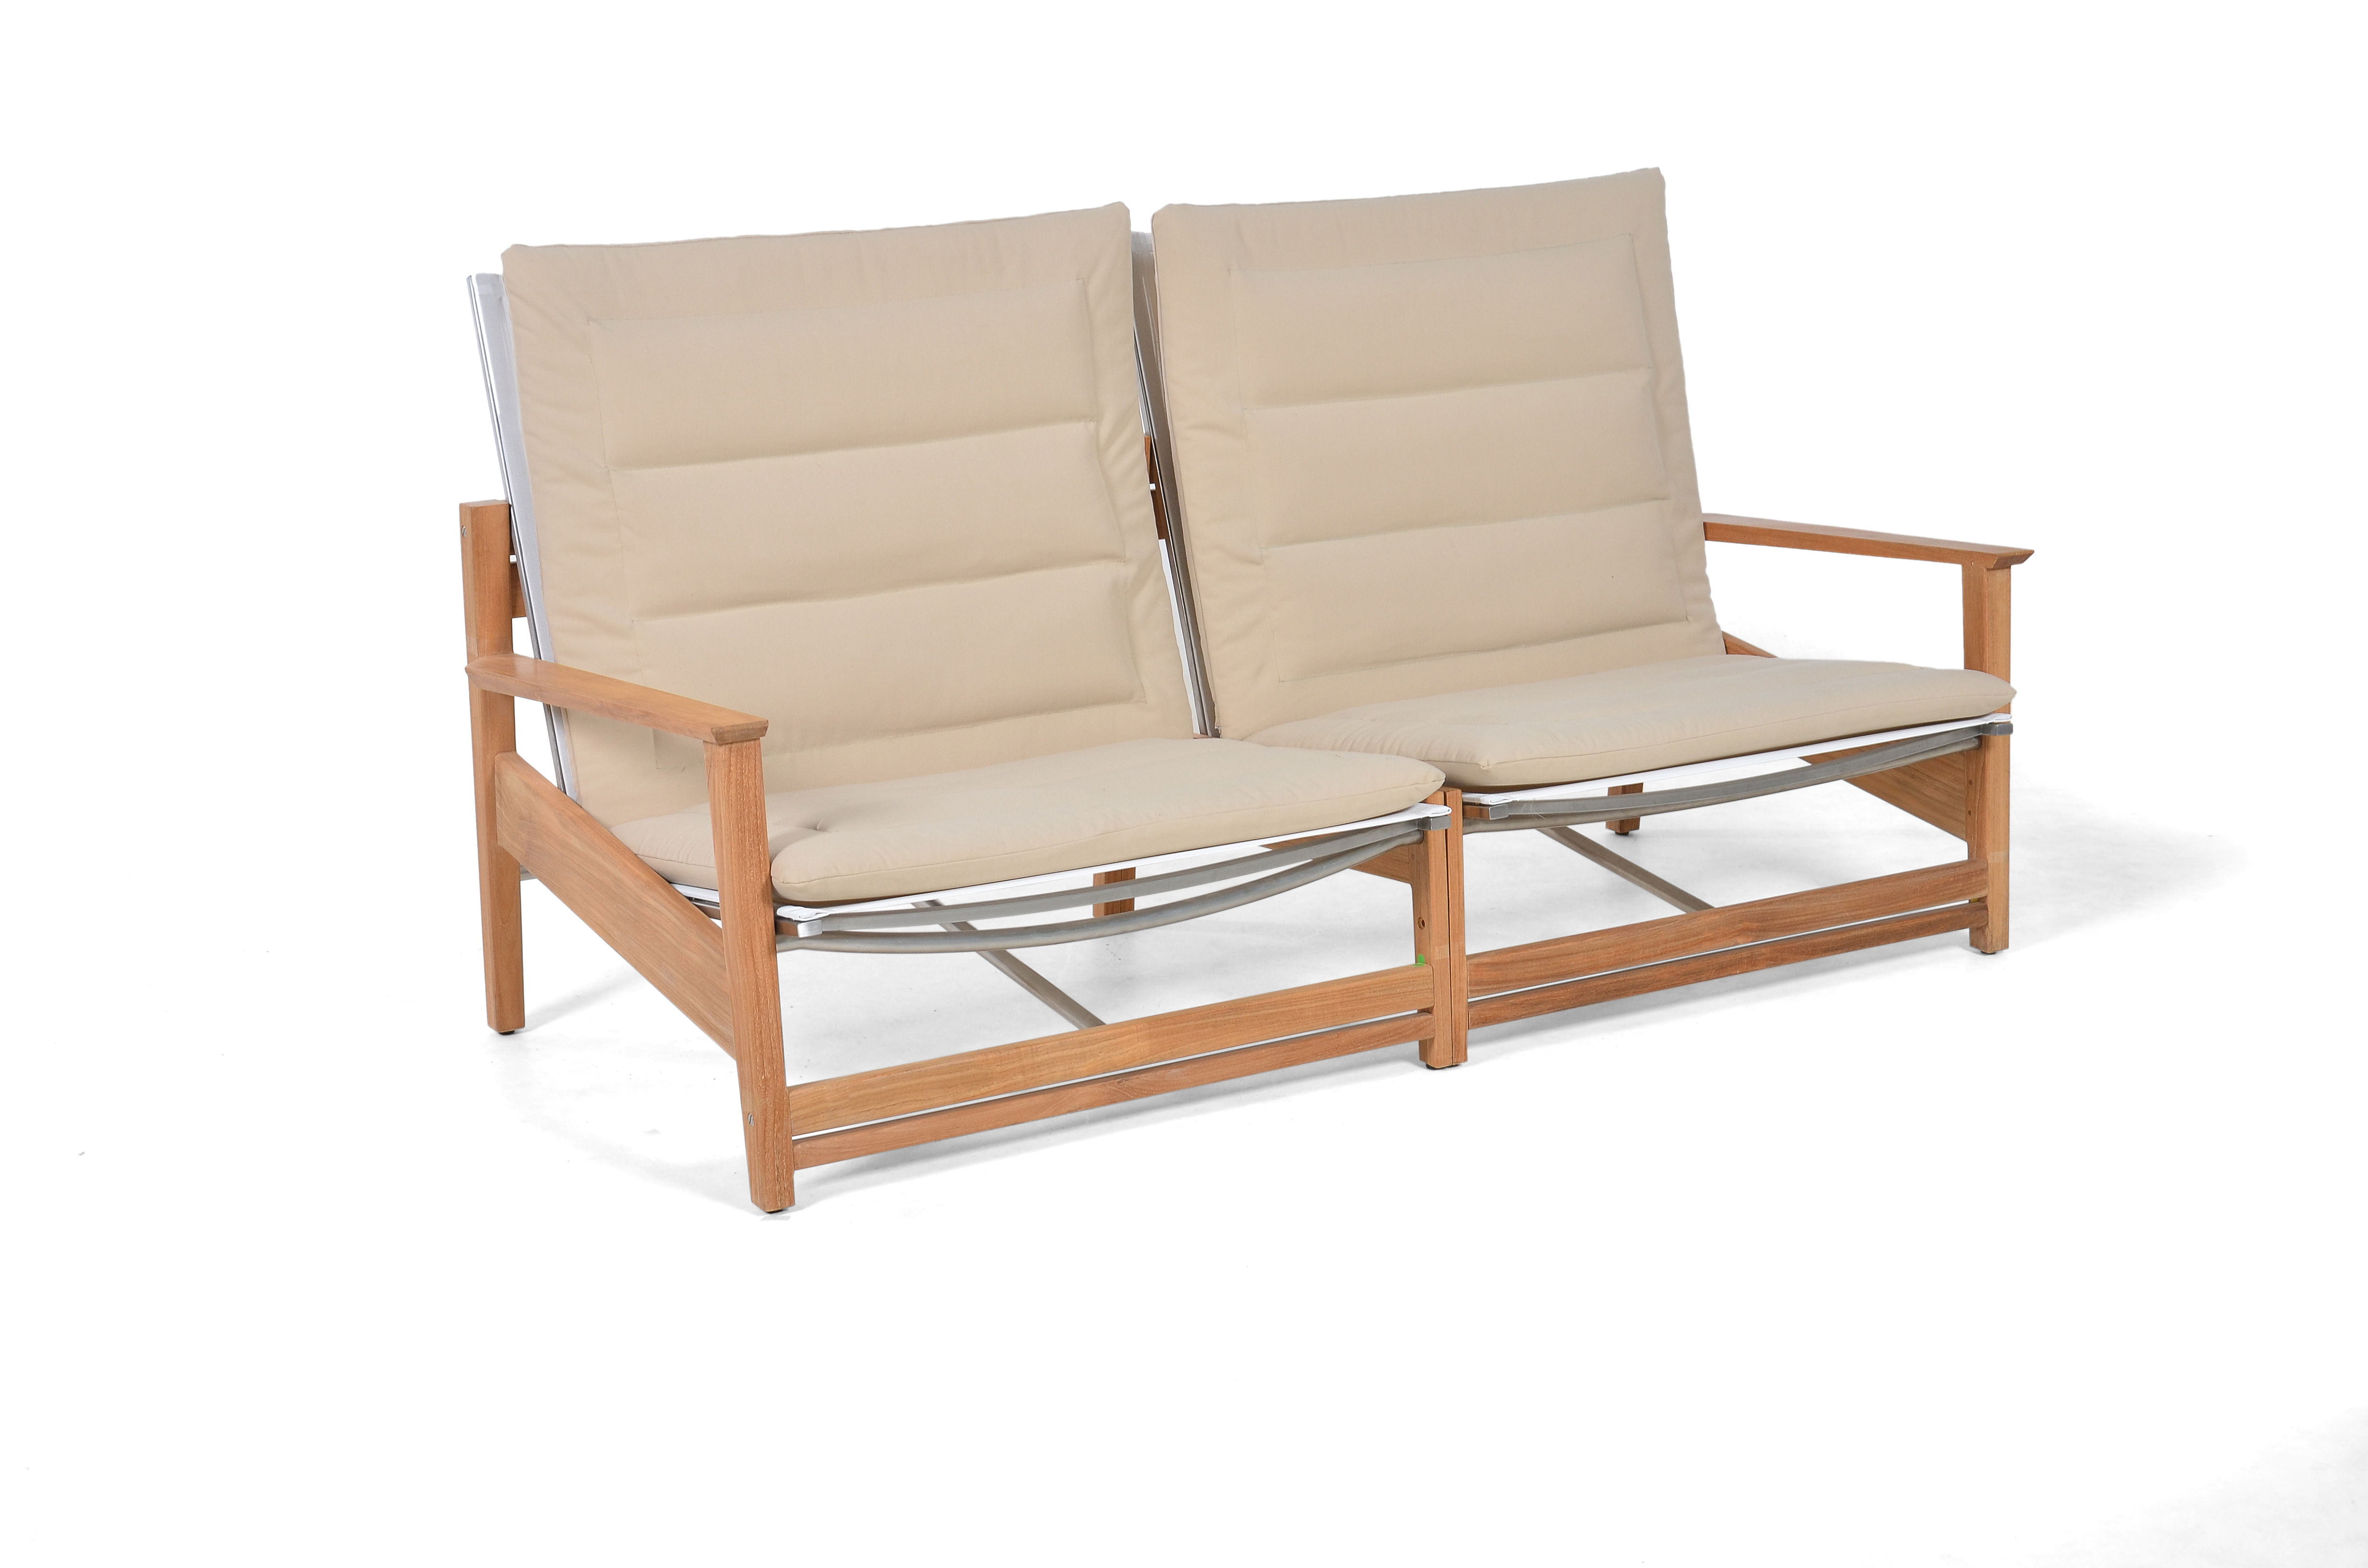 Eli reclining 2 seater sofa stellar couture outdoor for 2 seater chaise sofa for sale